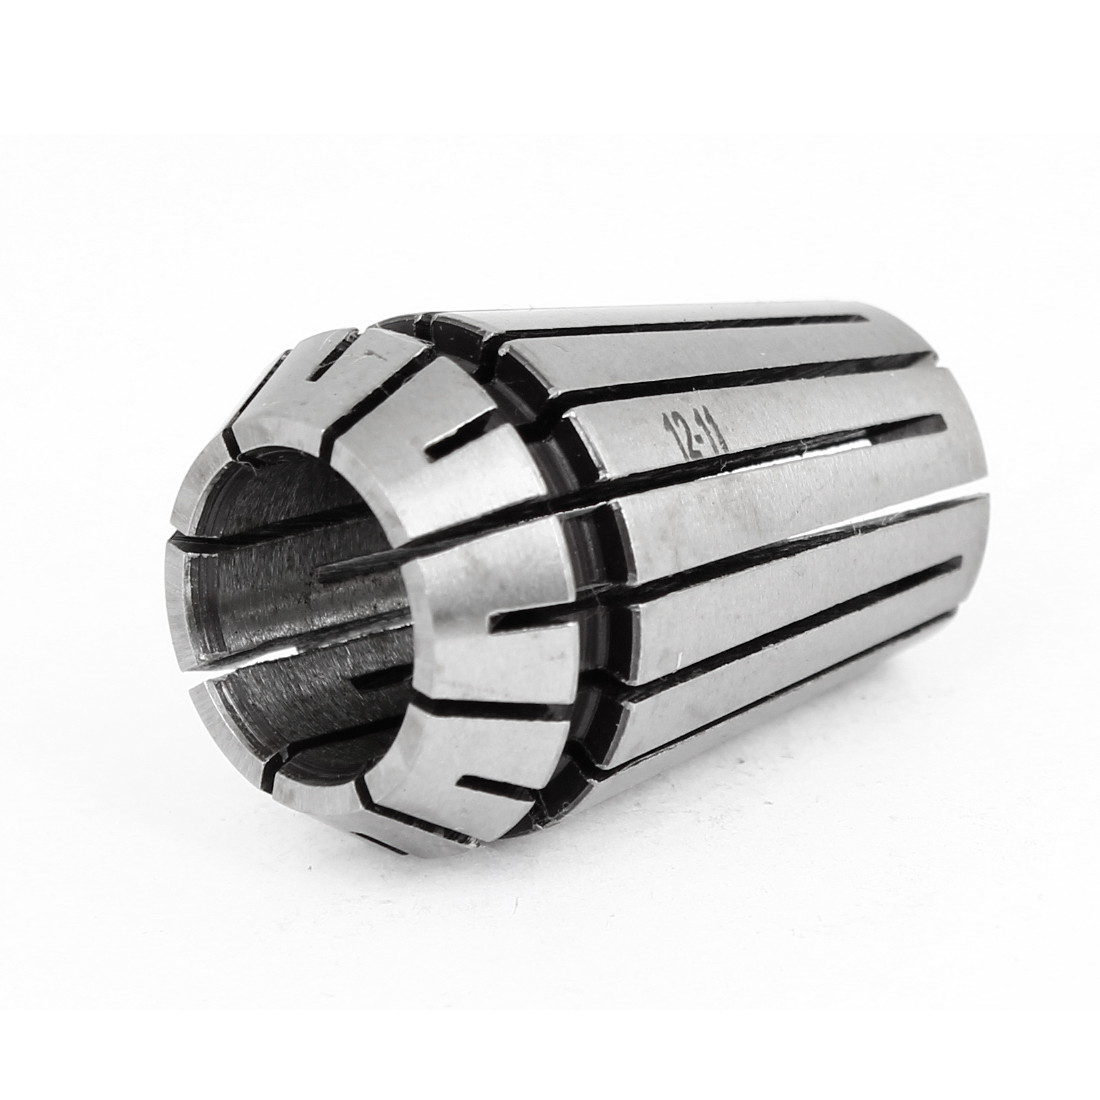 Clamping Range 12-11mm Stainless Steel ER20 Precision Spring Collet